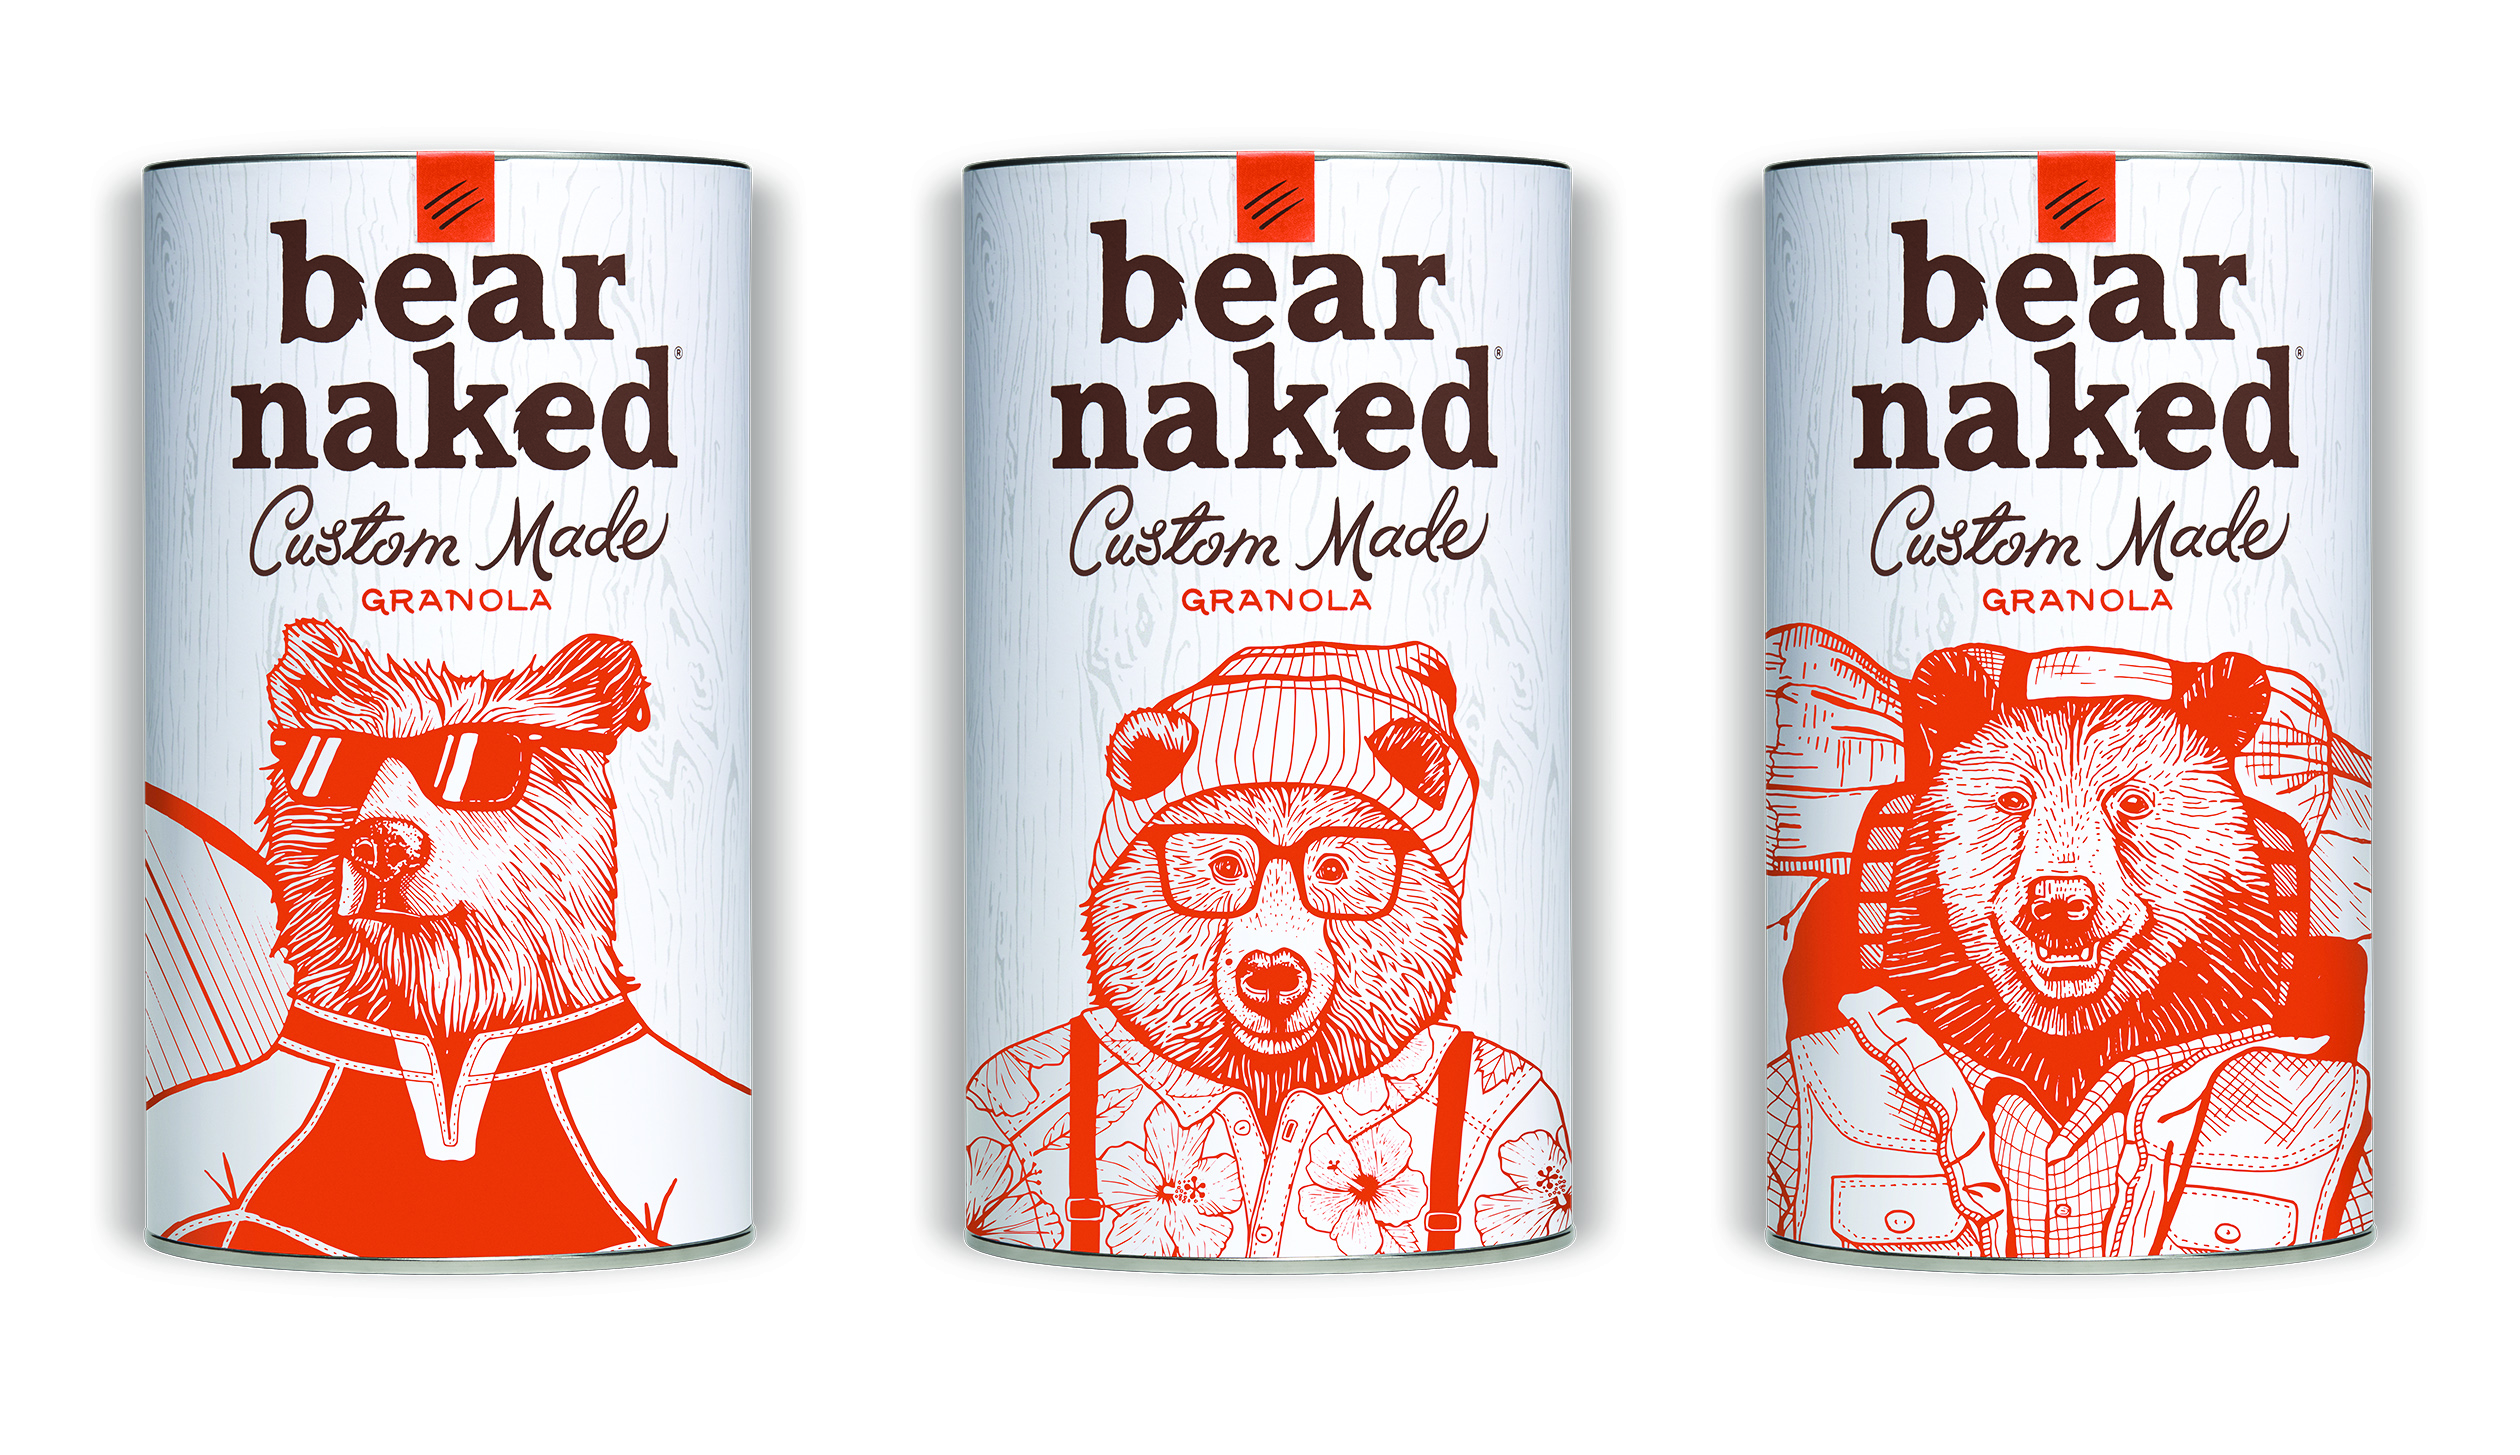 Bear Naked is debuting customized granola that IBM's Chef Watson helps select.